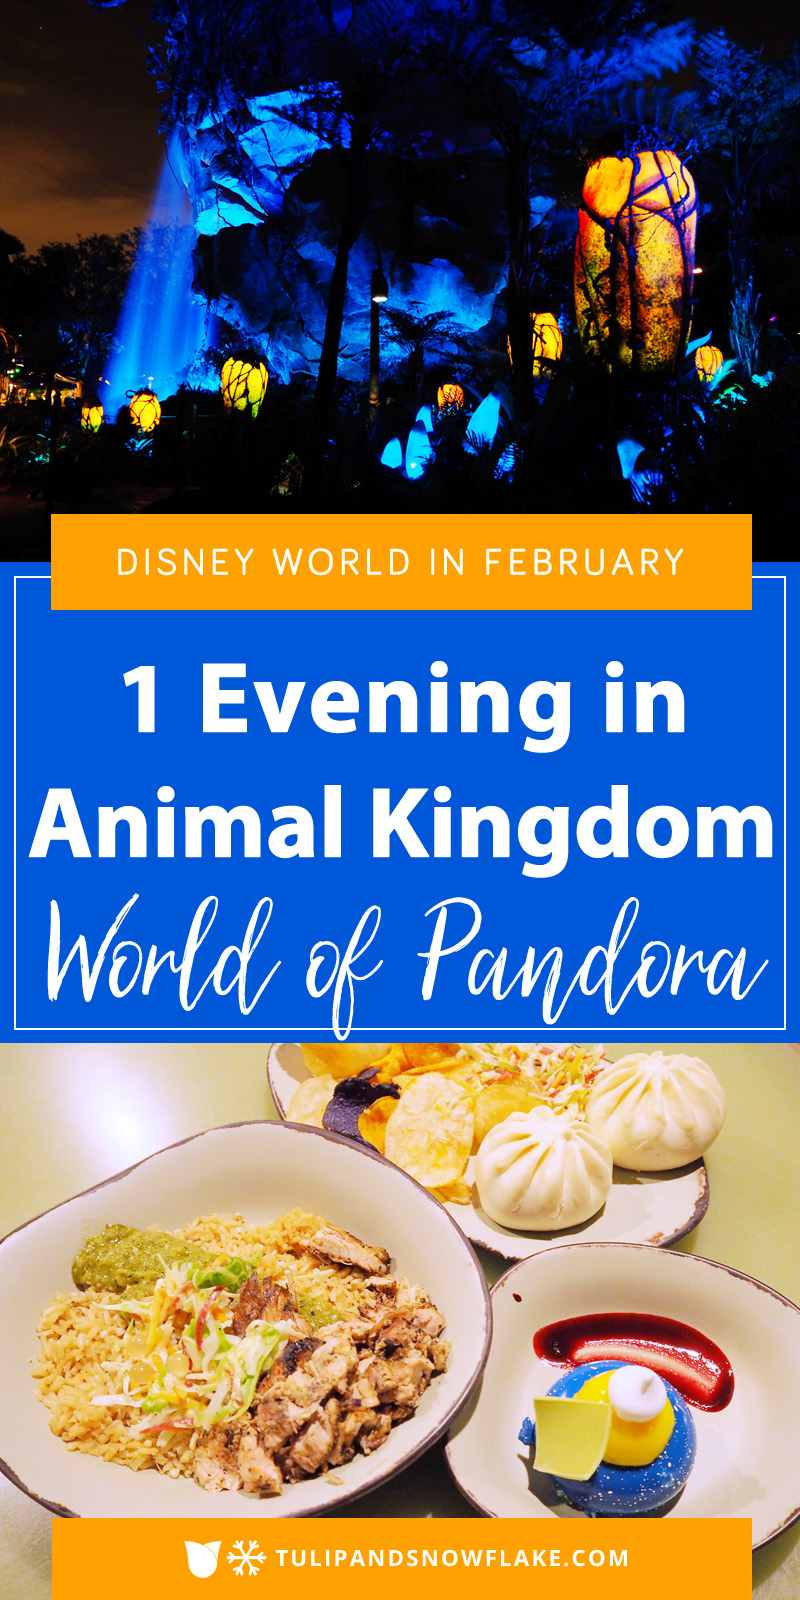 1 Evening in Animal Kingdom World of Pandora